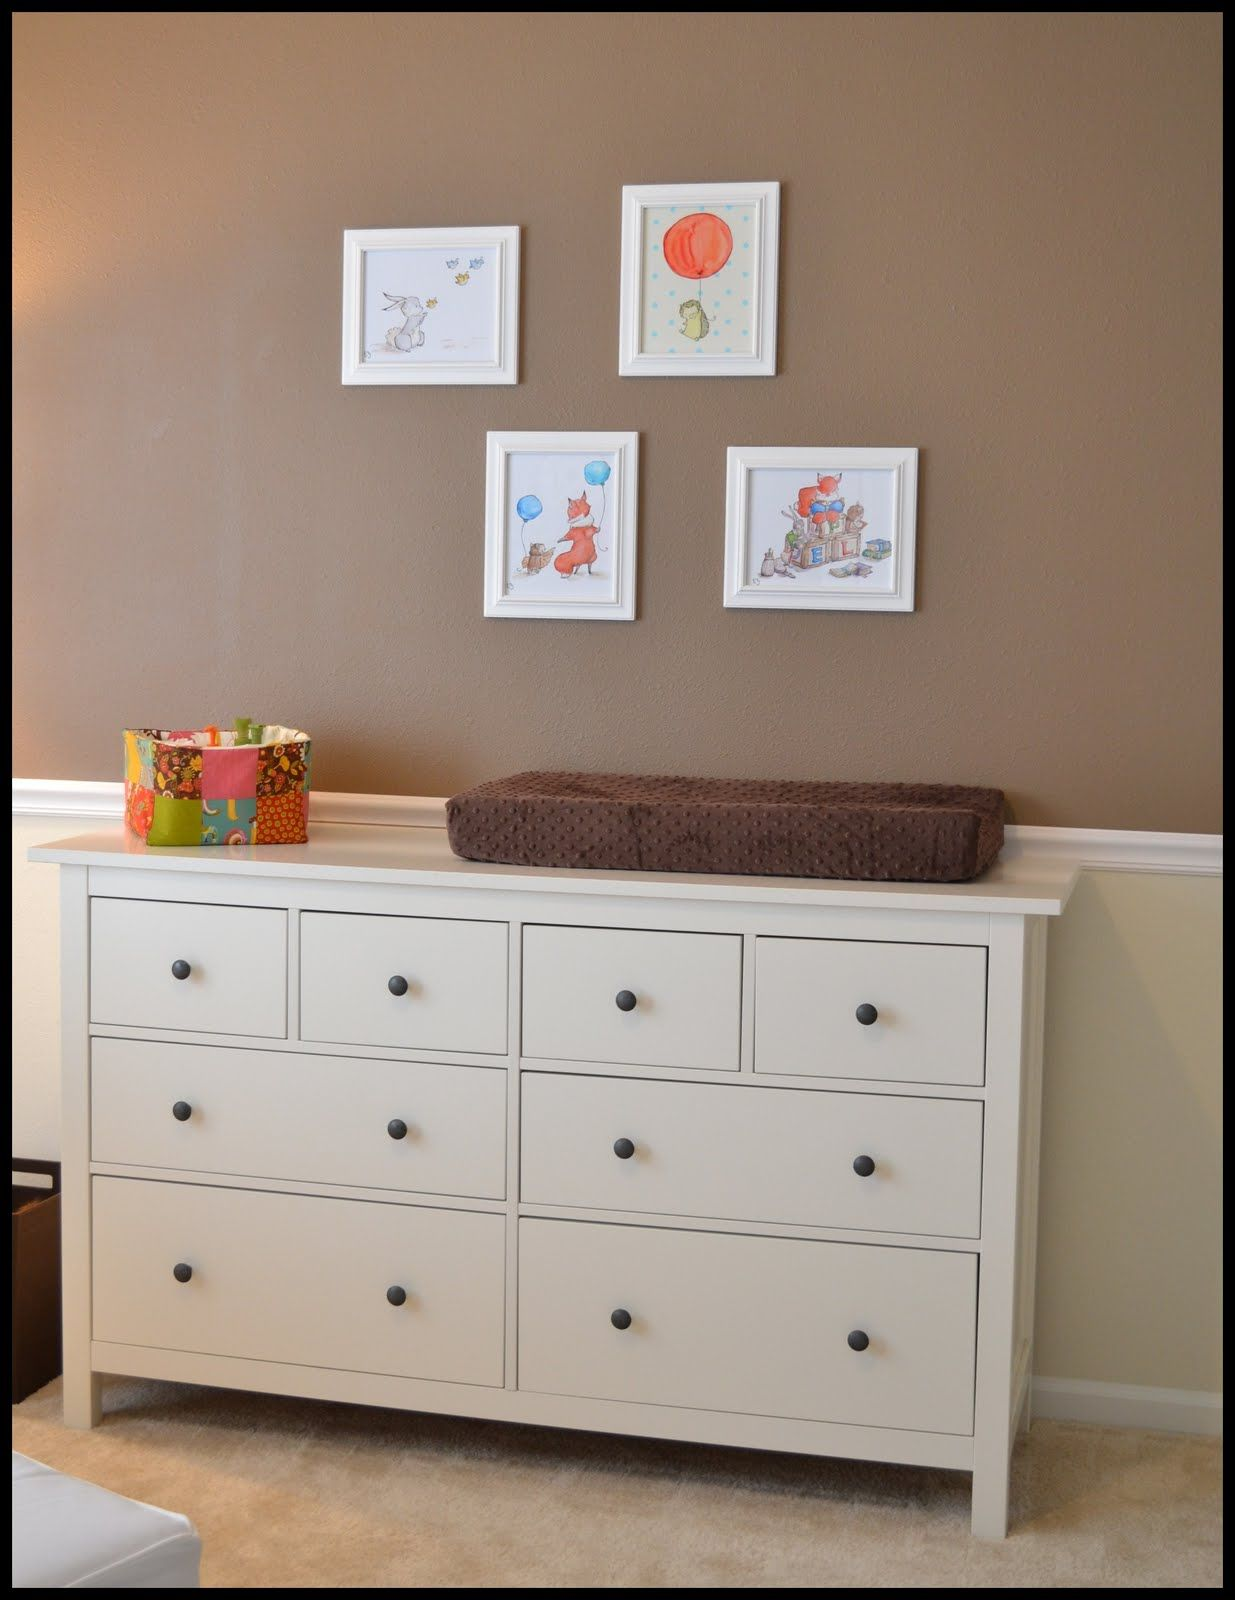 Ikea Hemnes Drawers To Also Use As Changing Table Home Decor